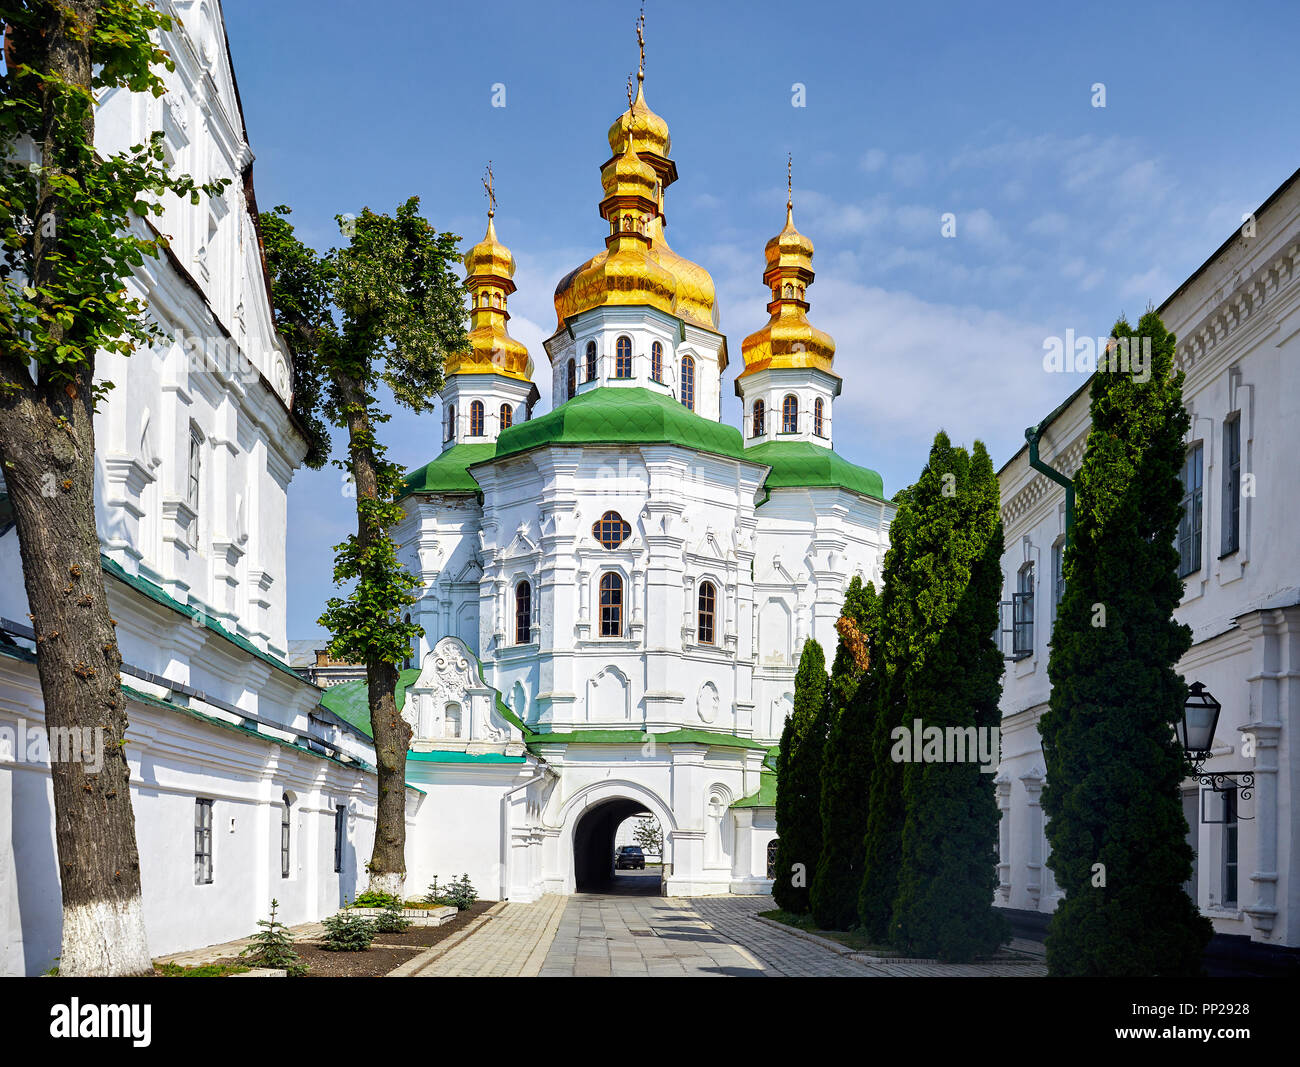 Church with golden domes at Kiev Pechersk Lavra Christian complex. Old historical architecture in Kiev, Ukraine Stock Photo